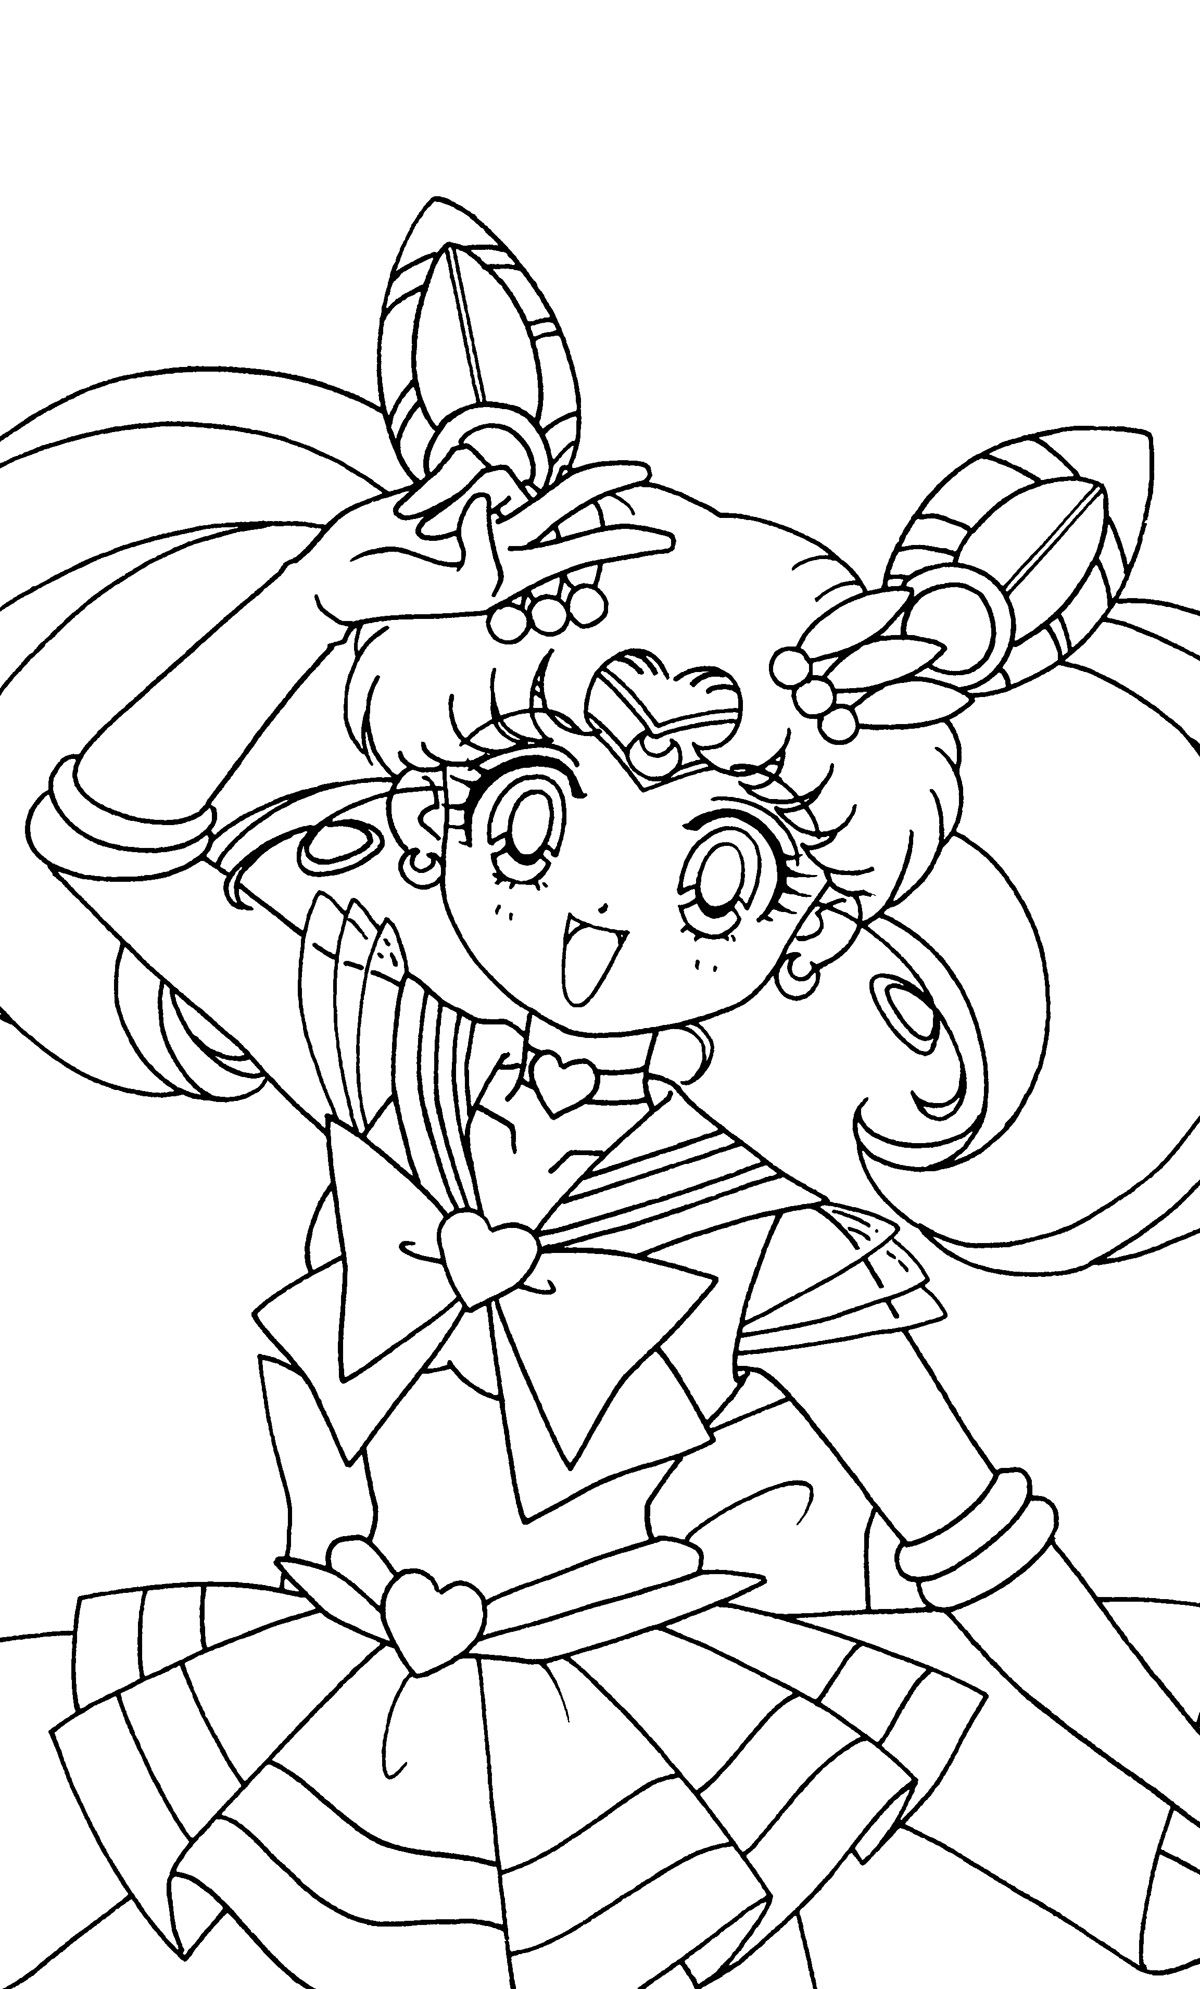 chibi moon coloring pages - photo#27